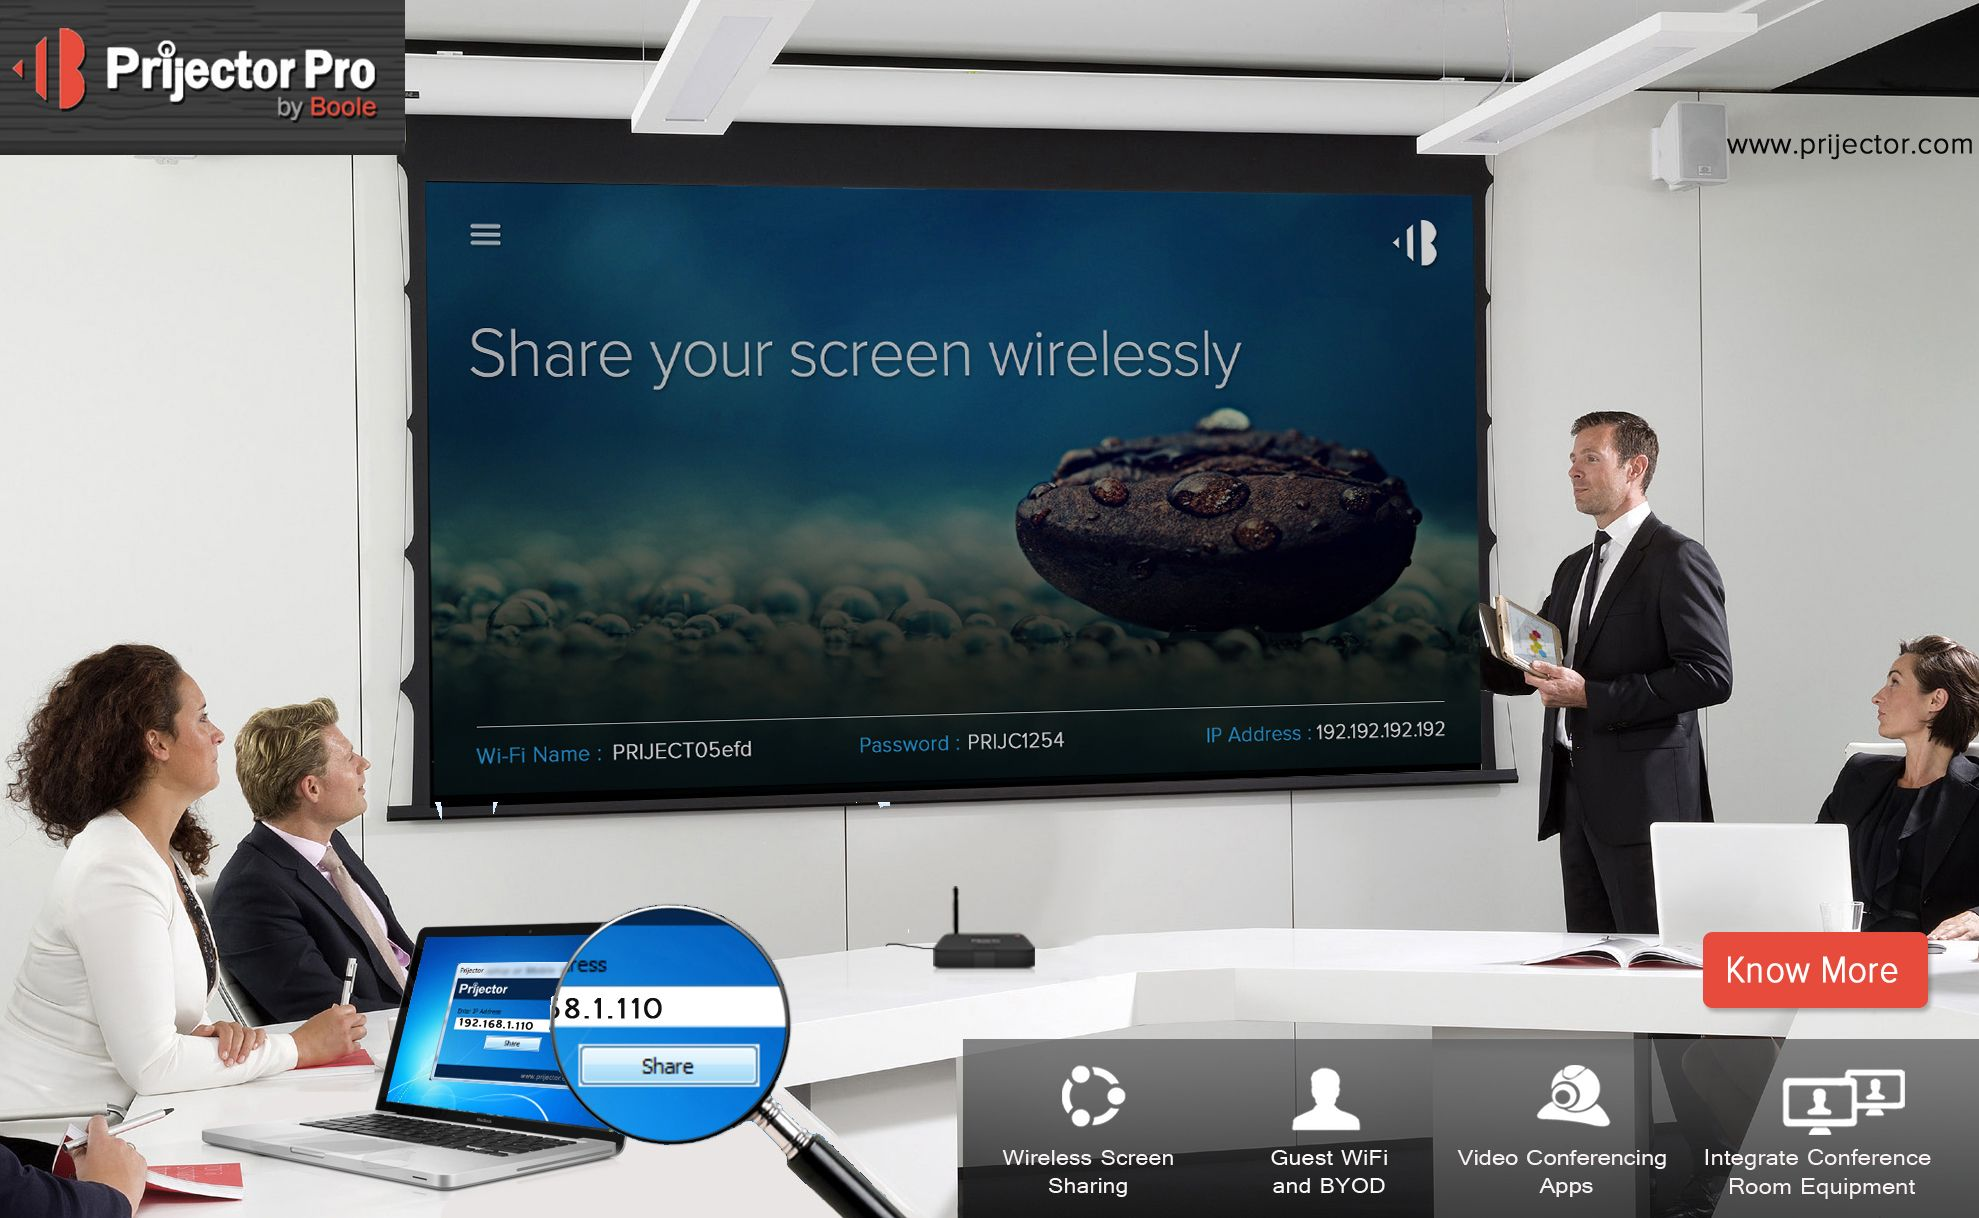 Prijector Pro makes every meeting room video conferencing